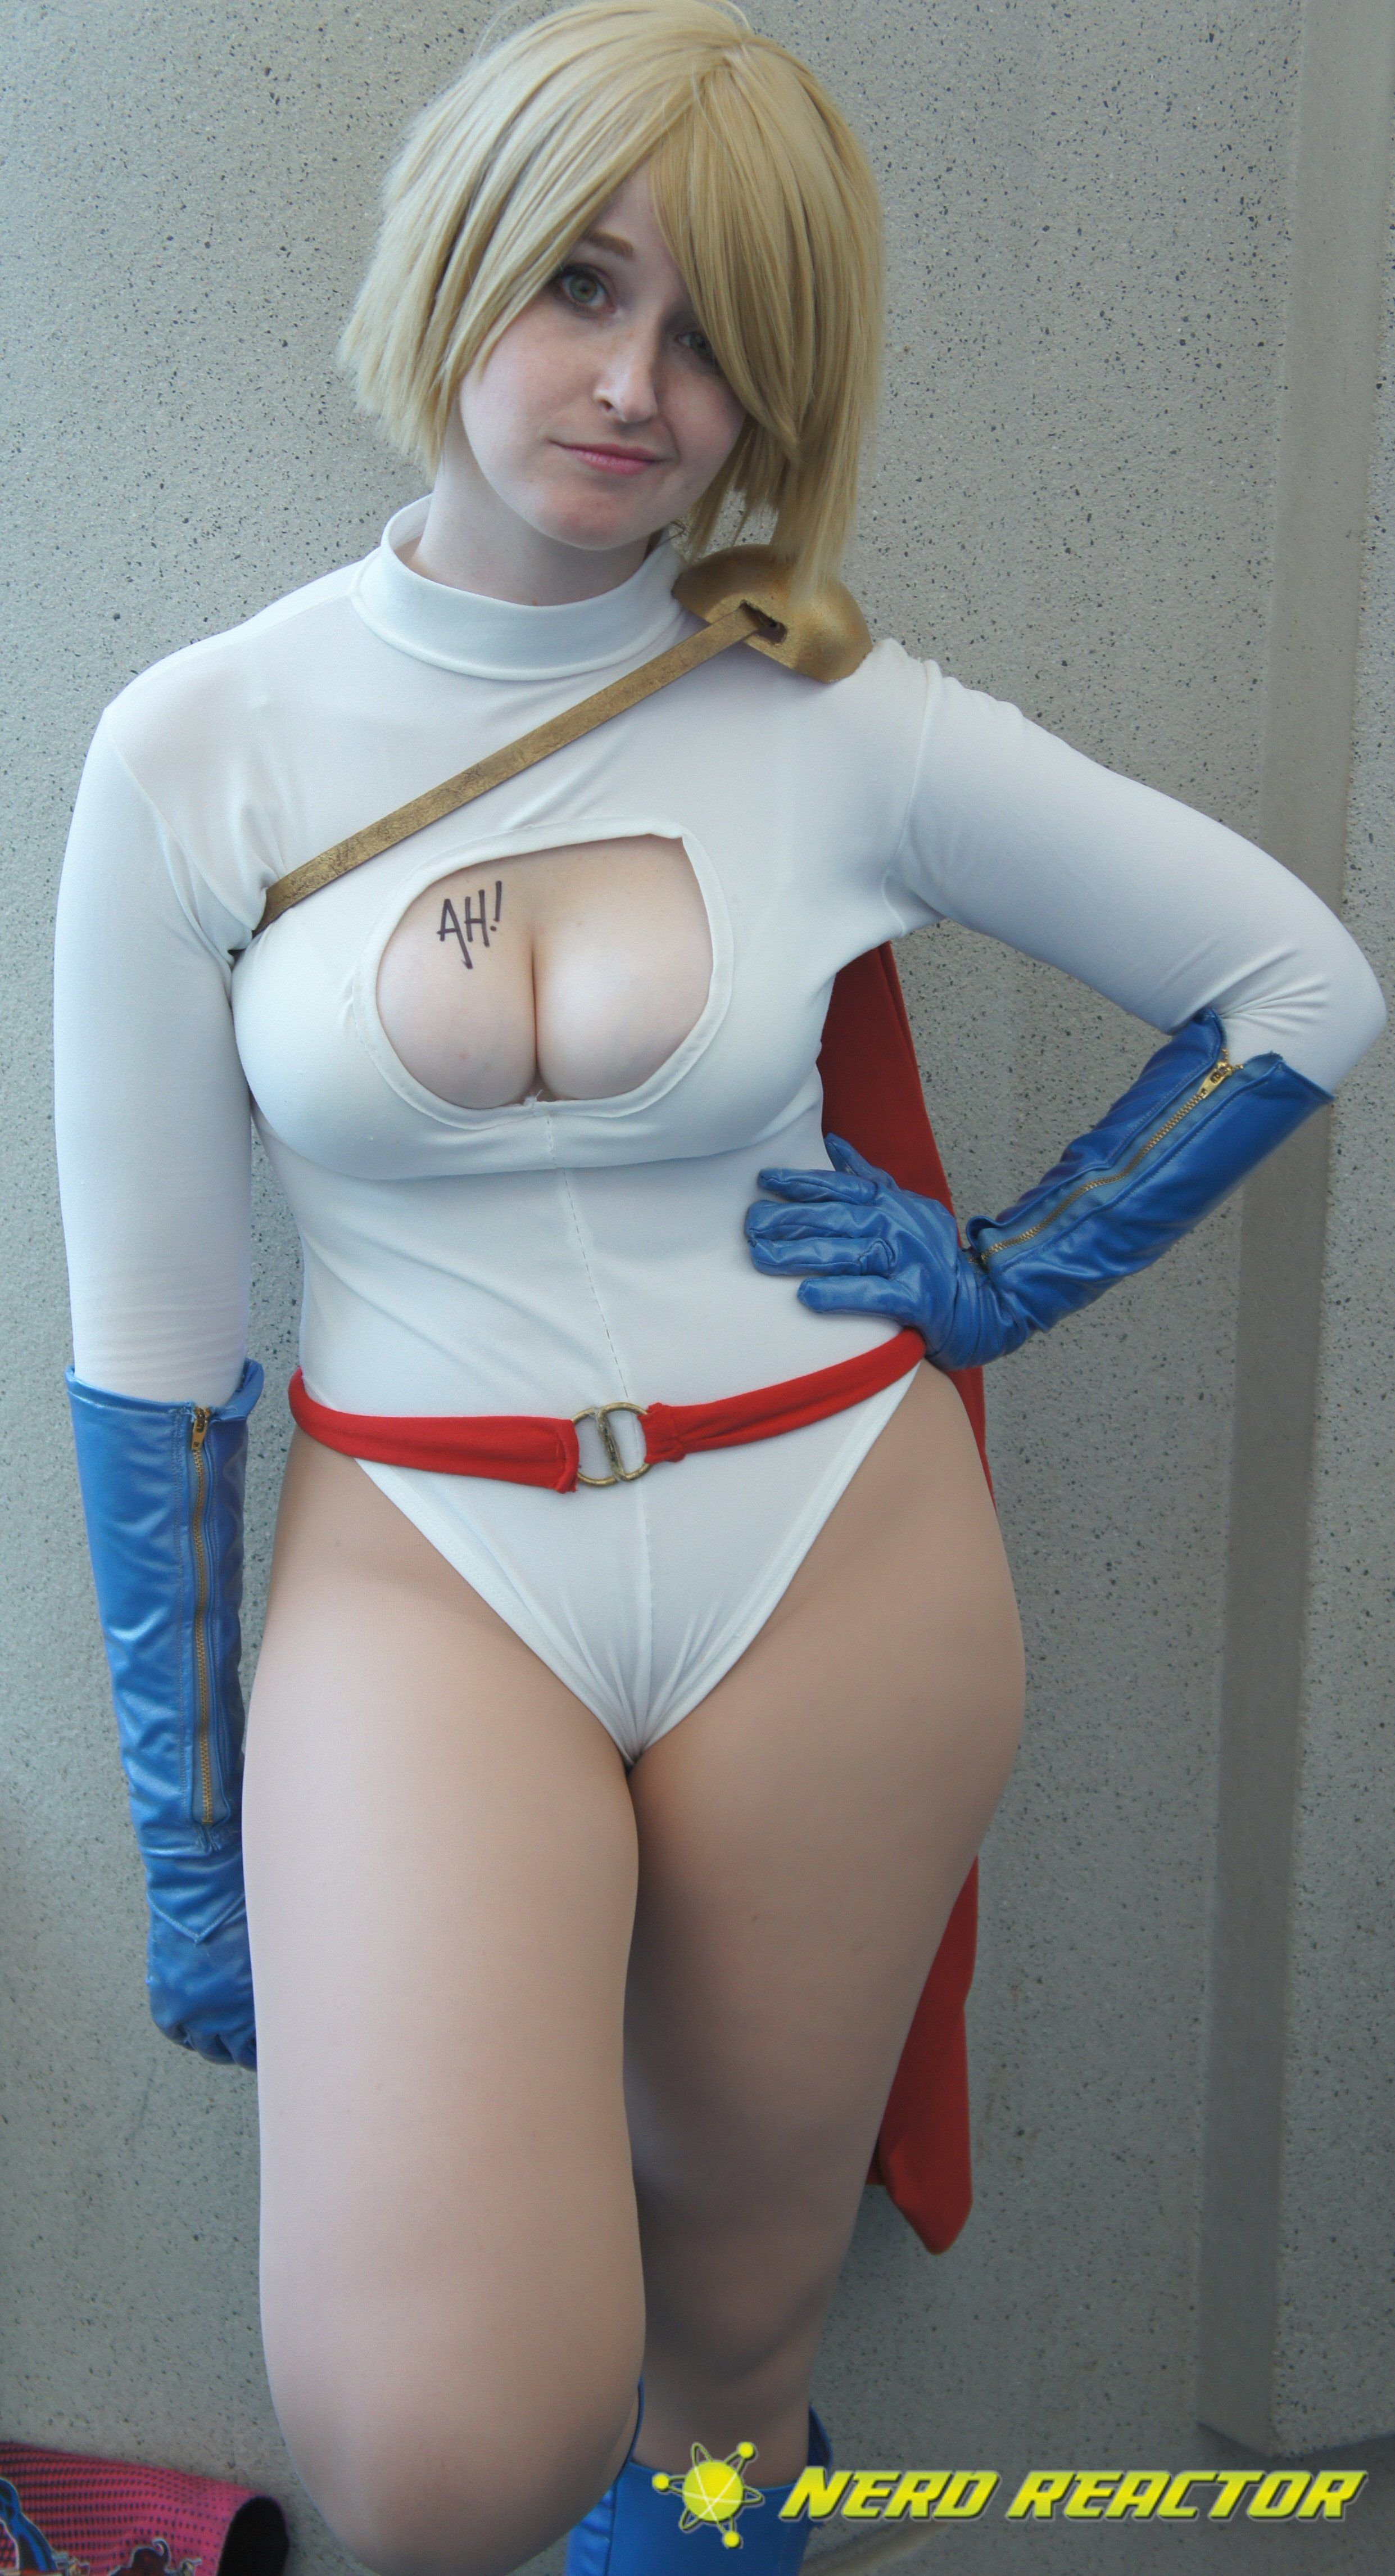 The purpose Power girl cosplay nude many thanks